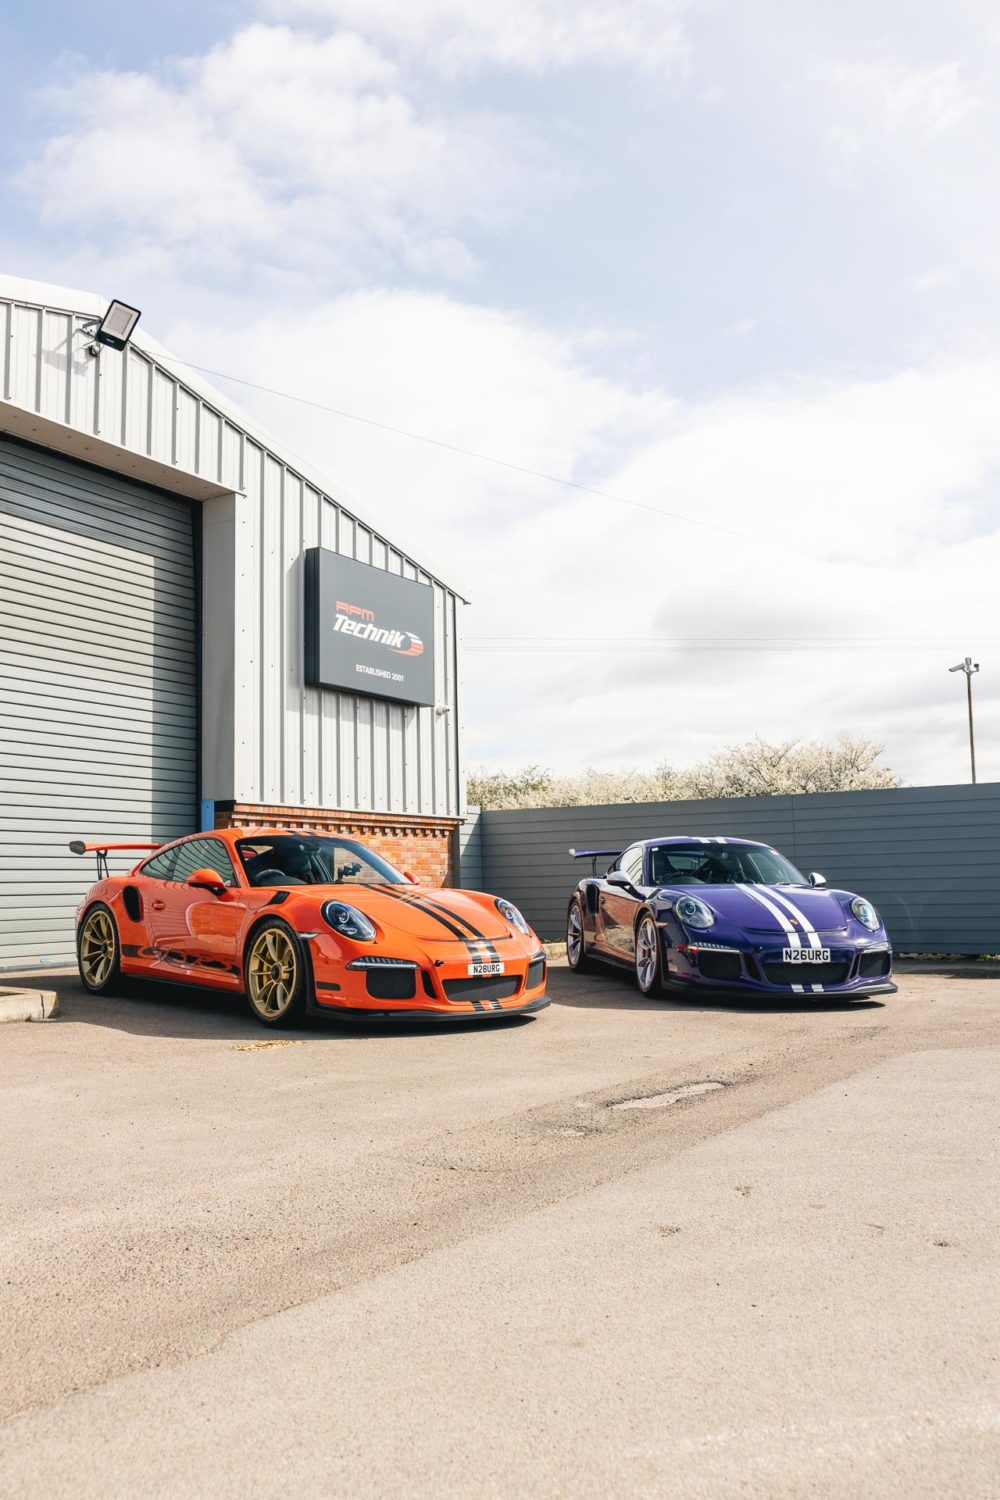 gt3rs track stormers at RPM technik